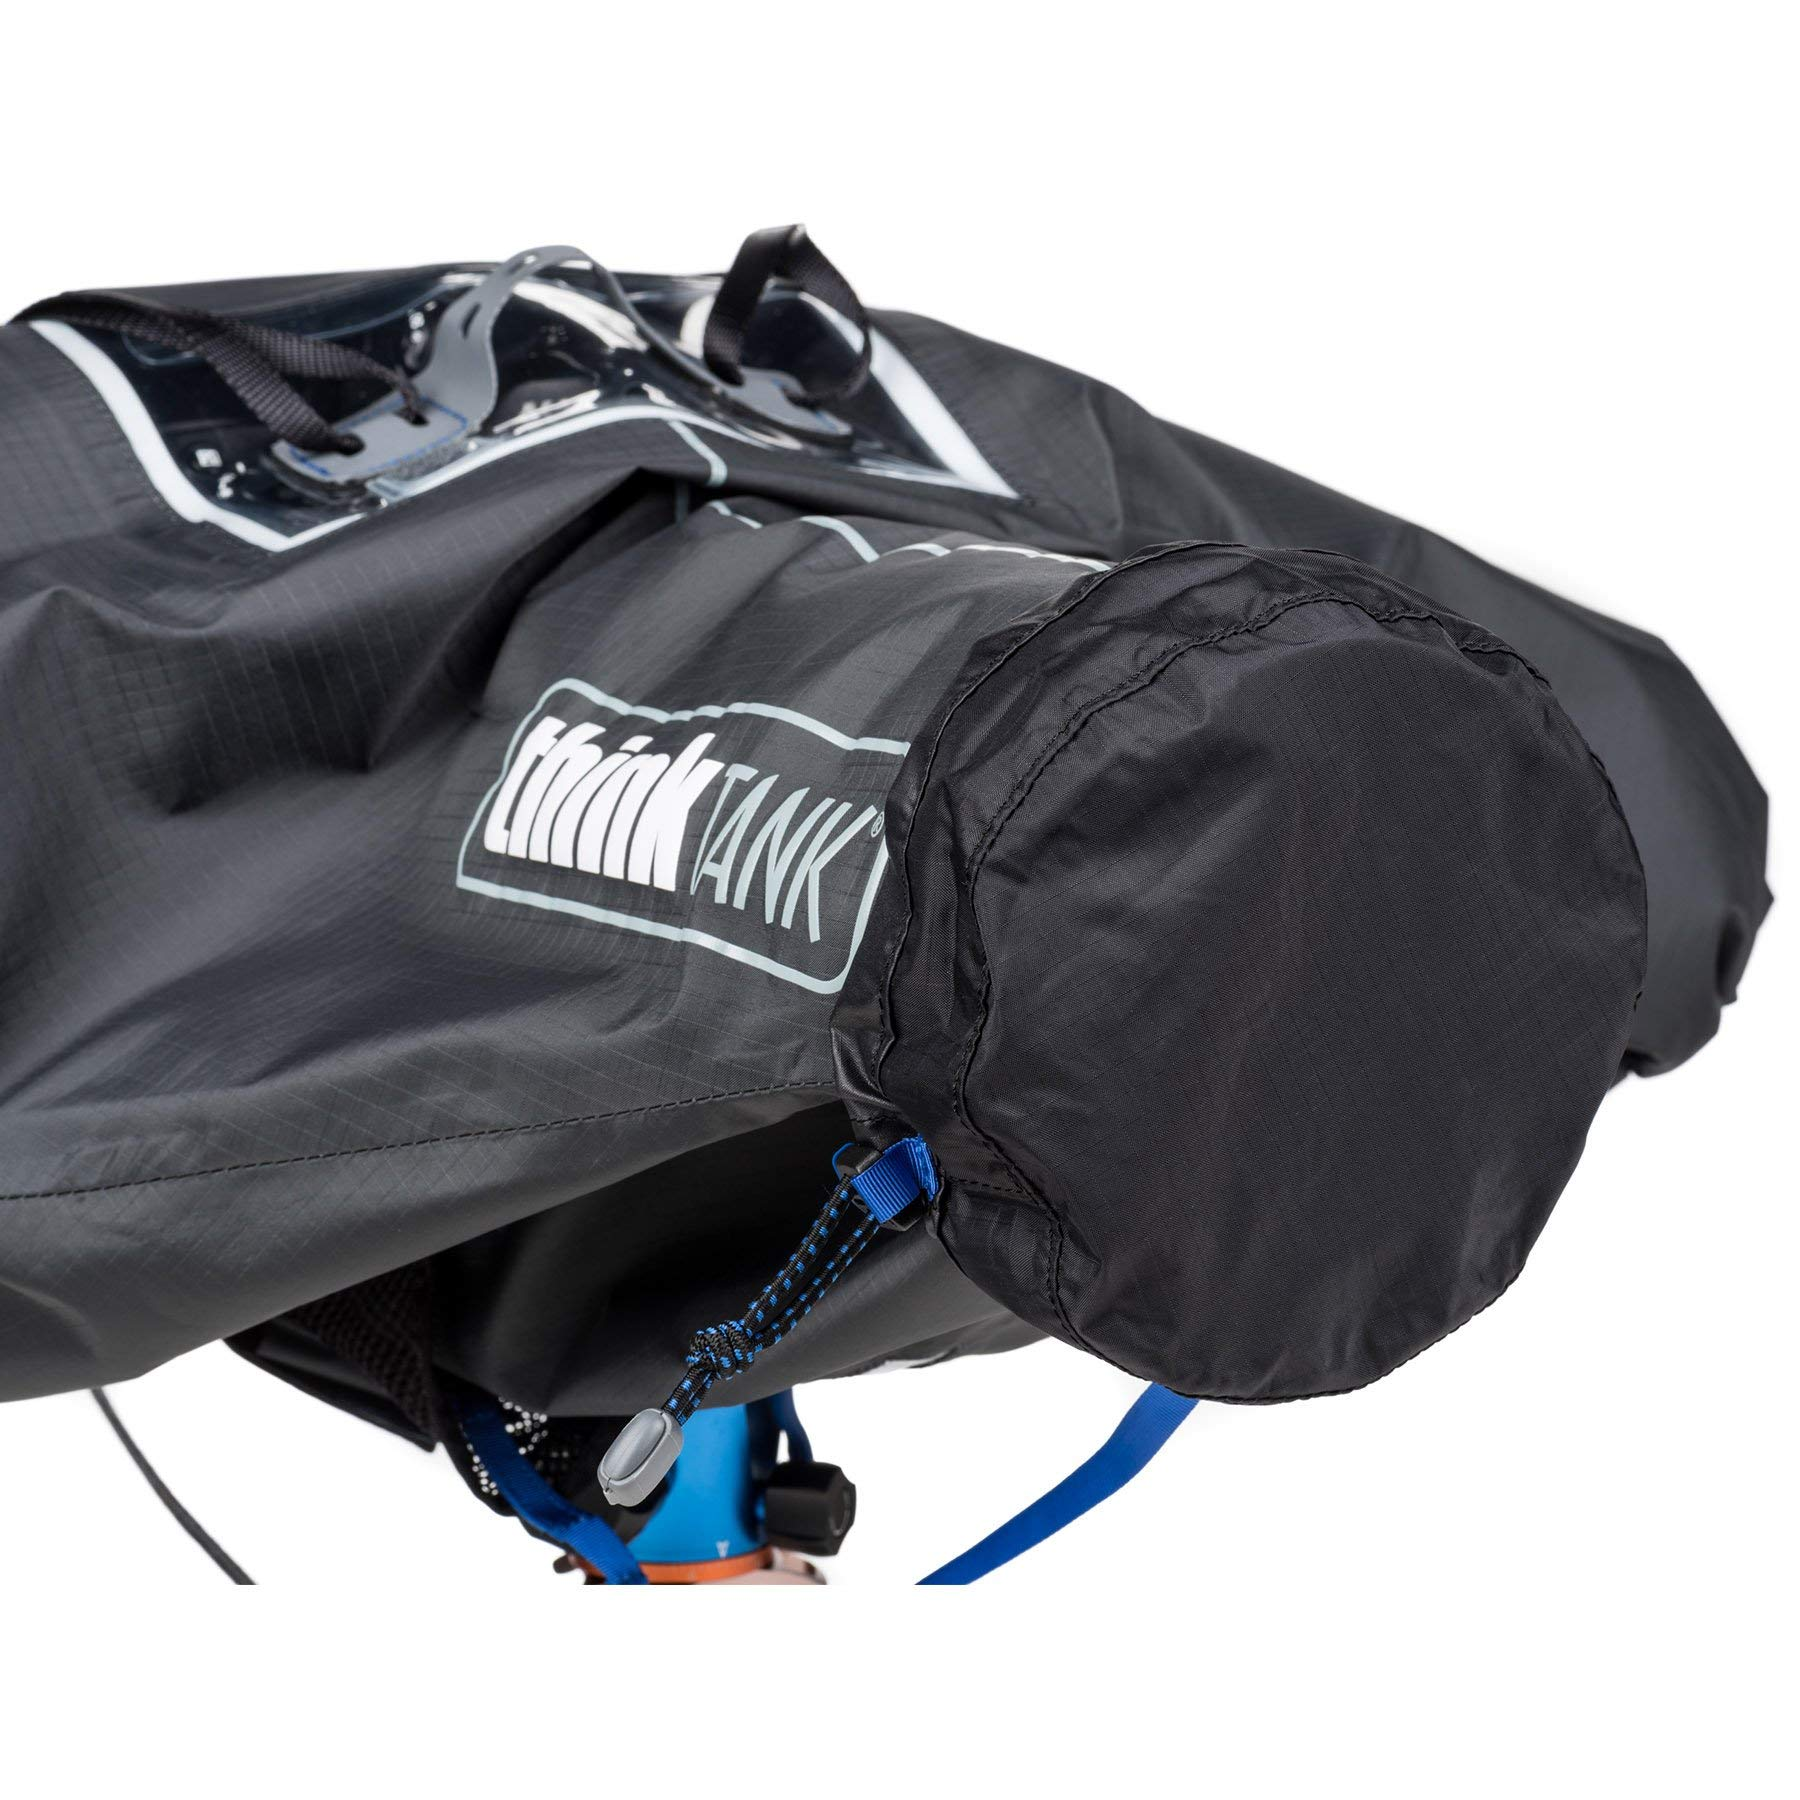 Think Tank Photo Hydrophobia D 70-200 V3 Camera Rain Cover for DSLR Camera with 70-200mm f/2.8 Lens by Think Tank (Image #8)